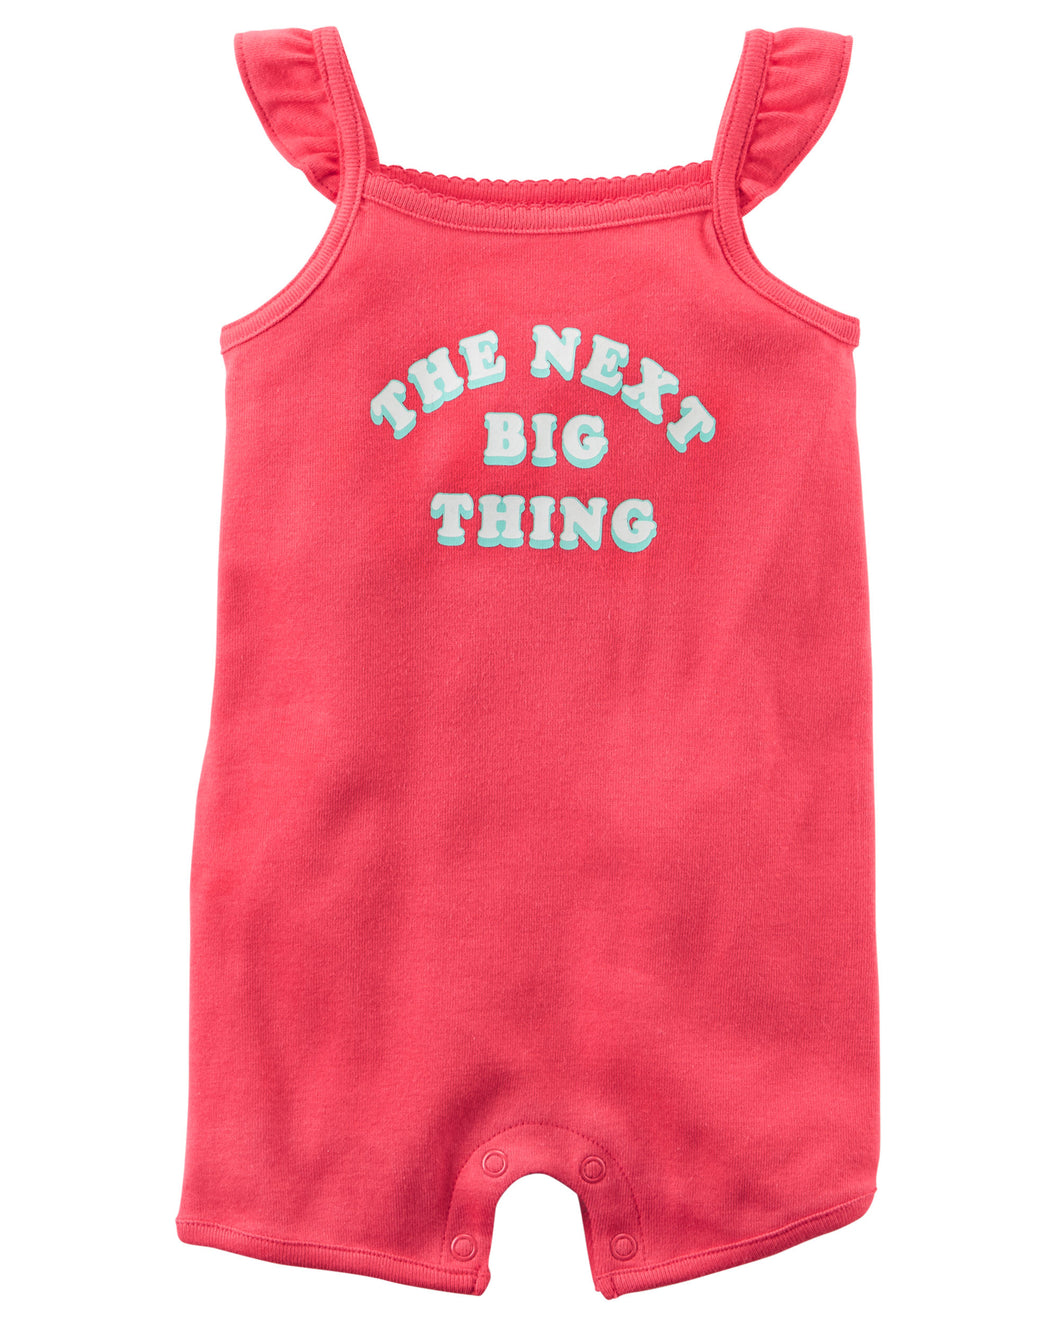 CAGL156 Carter's Baby Girls The Next Big Thing Romper